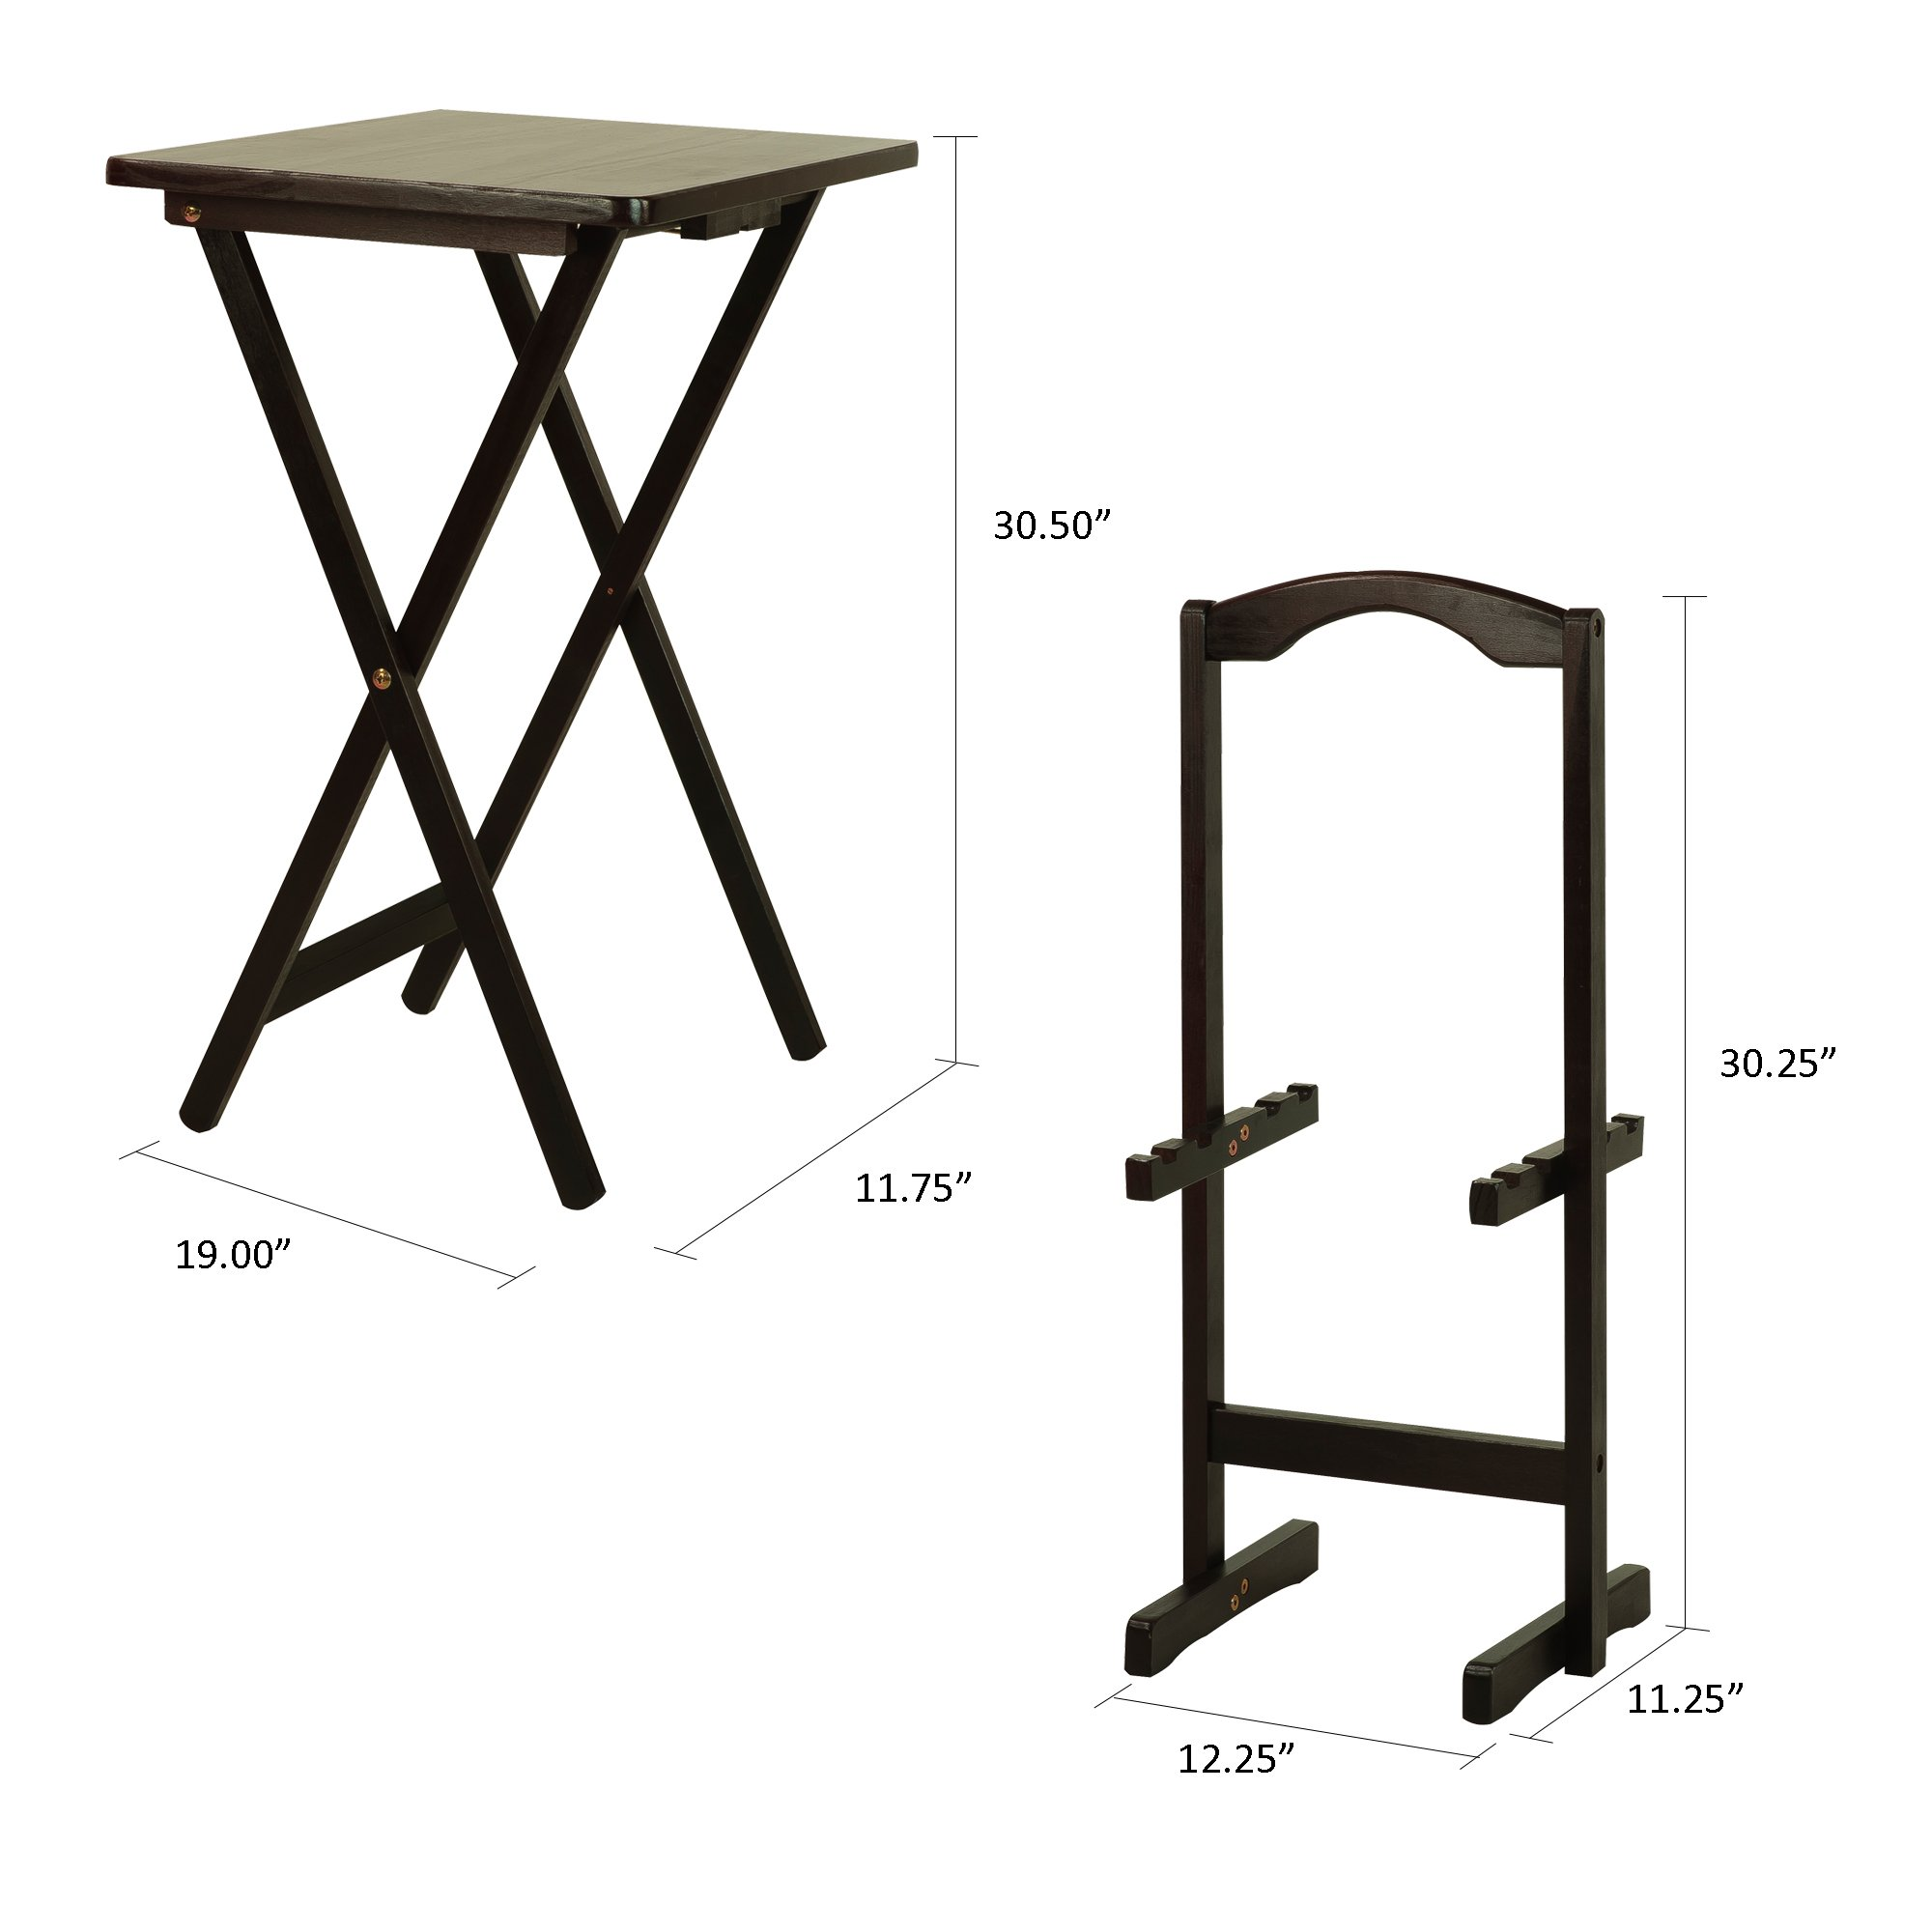 Casual Home 660-44 5-piece Tray Table Set-Espresso by Casual Home (Image #8)